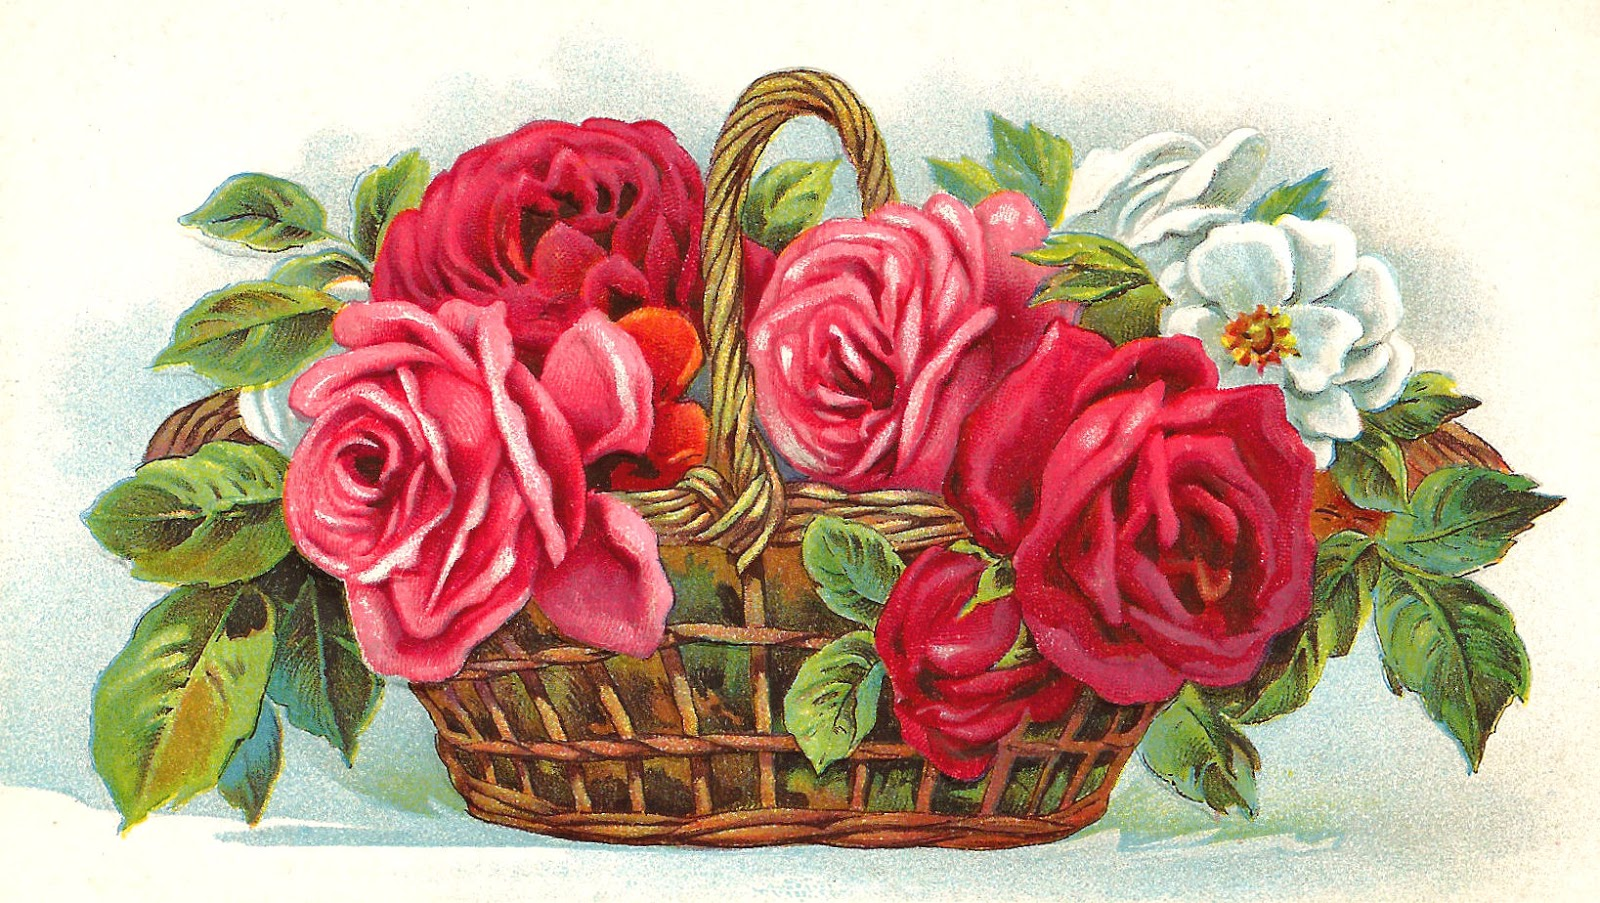 Free Red Rose Clip Art  Flower Basket Full Of Red Pink And White